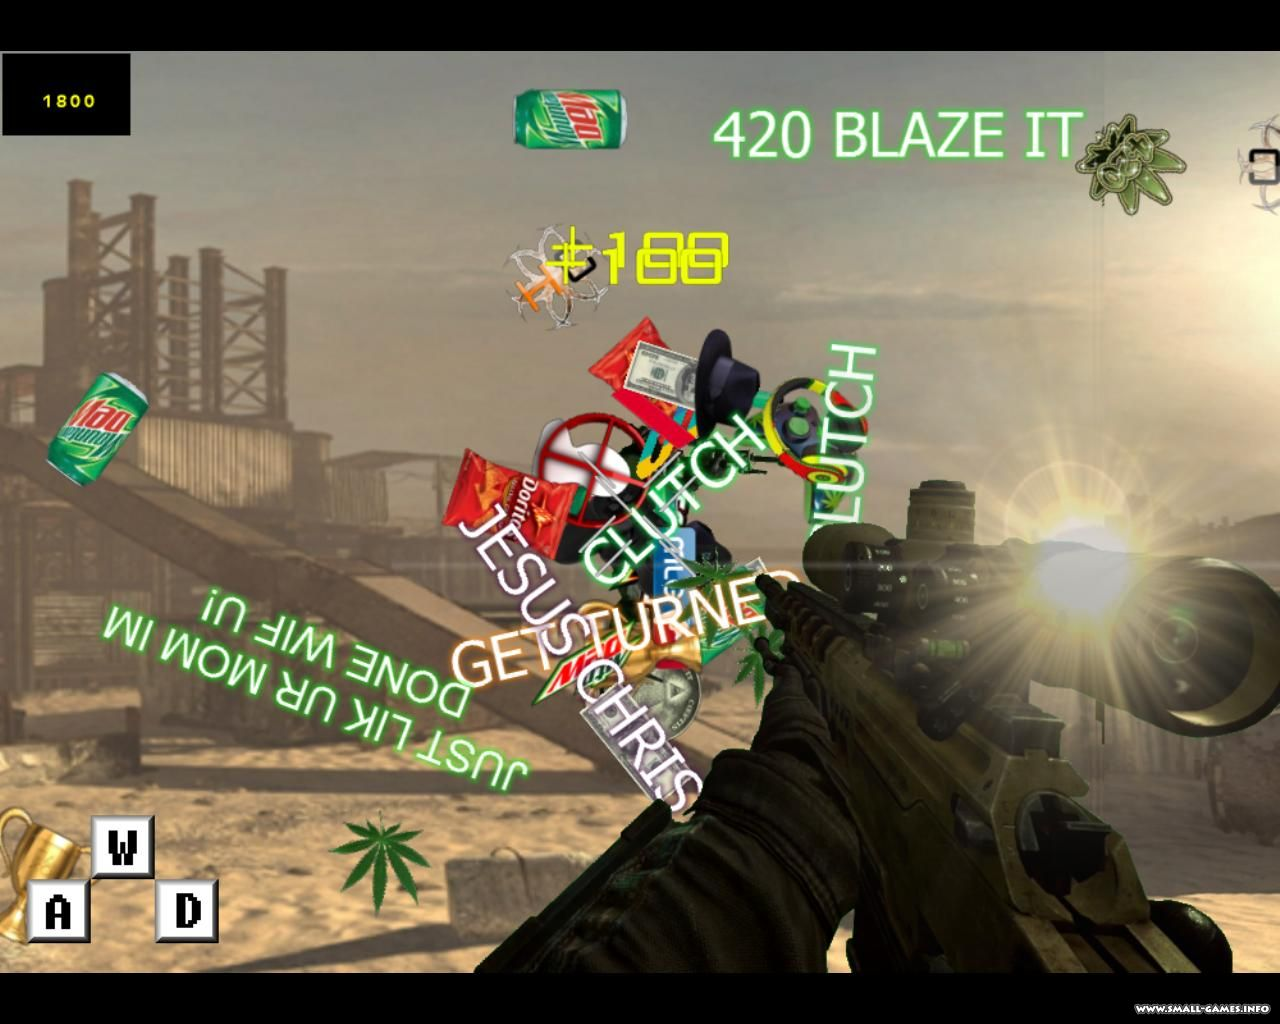 360 no scope book covers click for details mlg no scope simulator